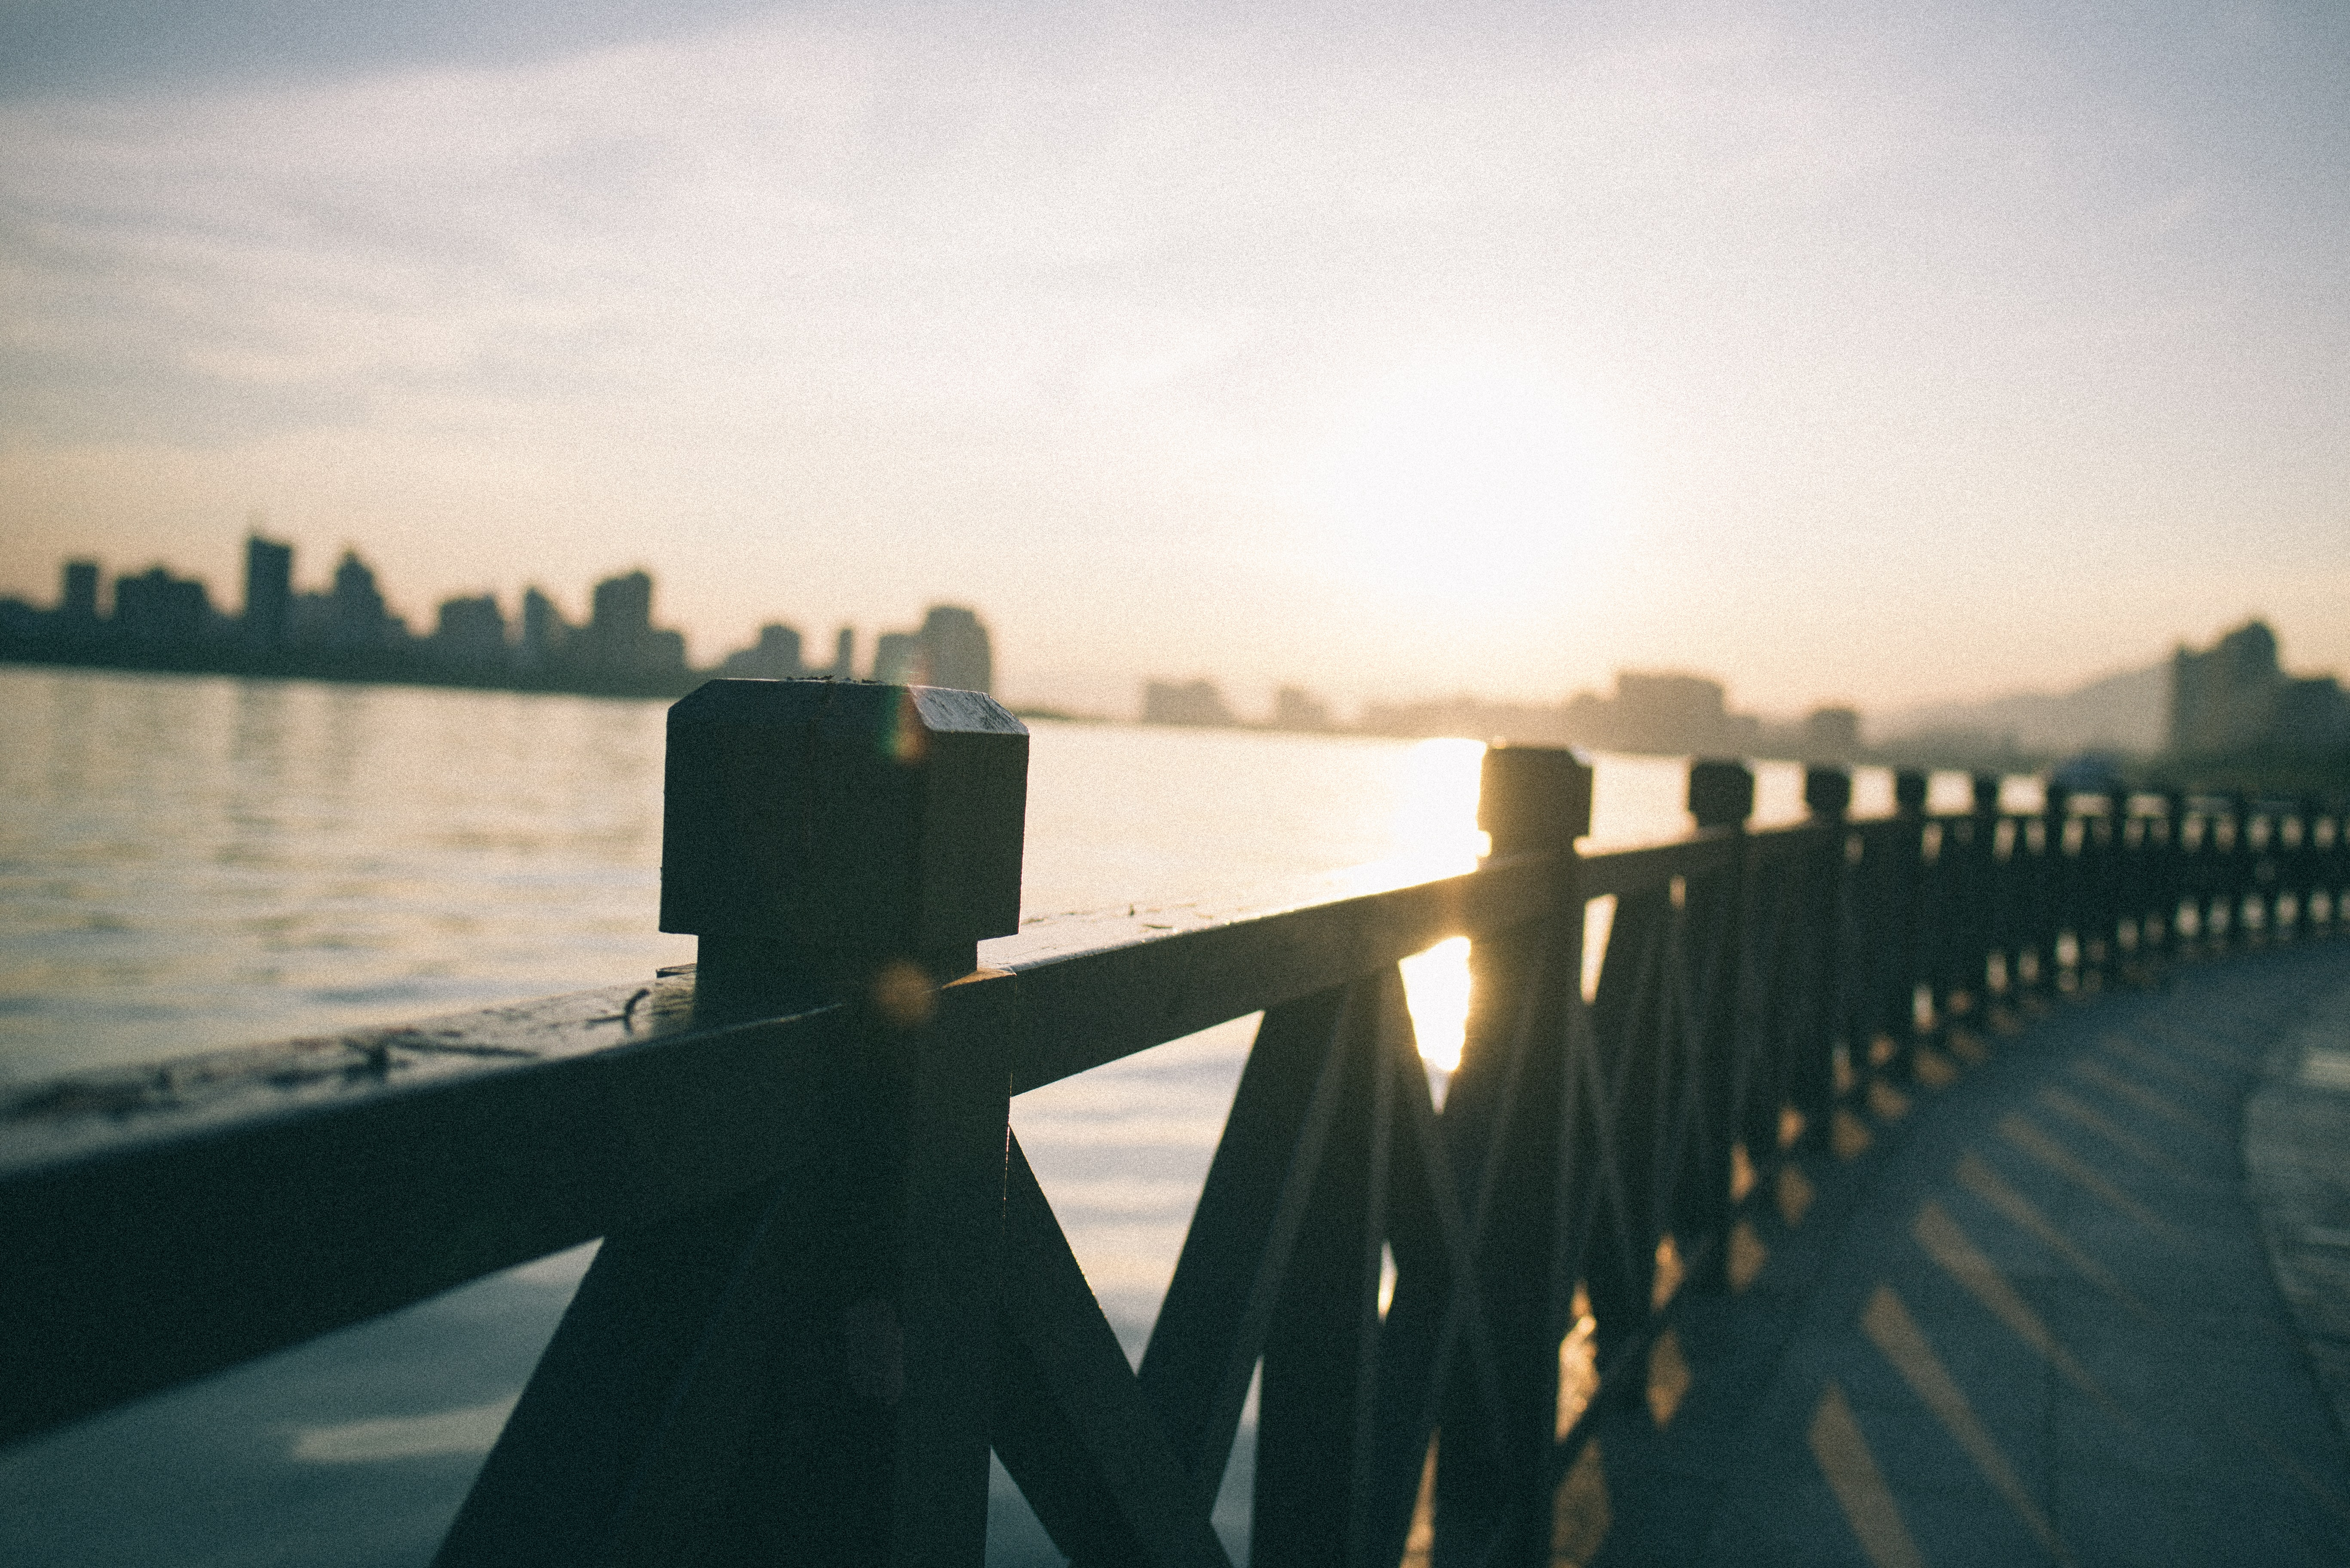 brown wooden dock railings with body of water background